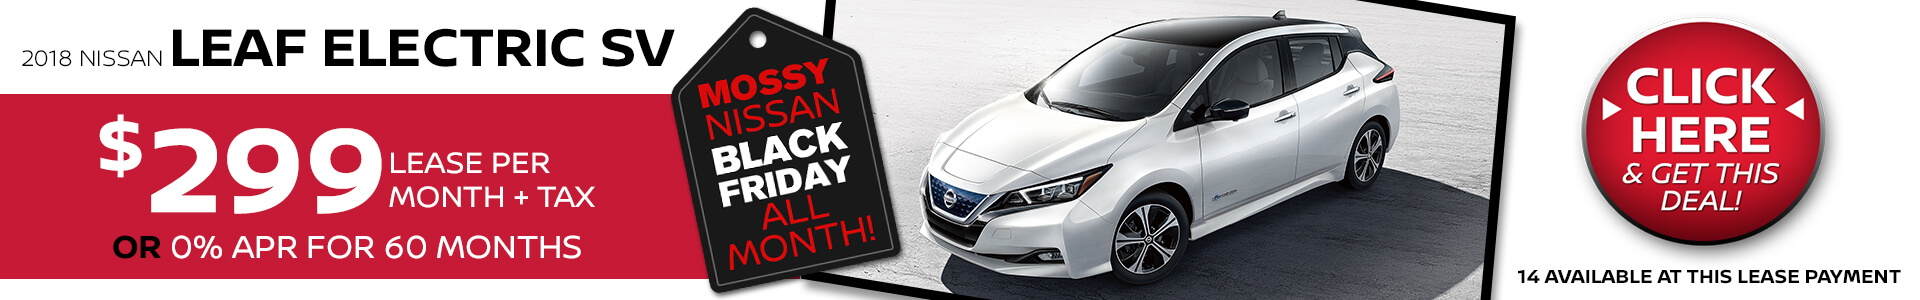 Nissan Leaf Electric $299 Lease